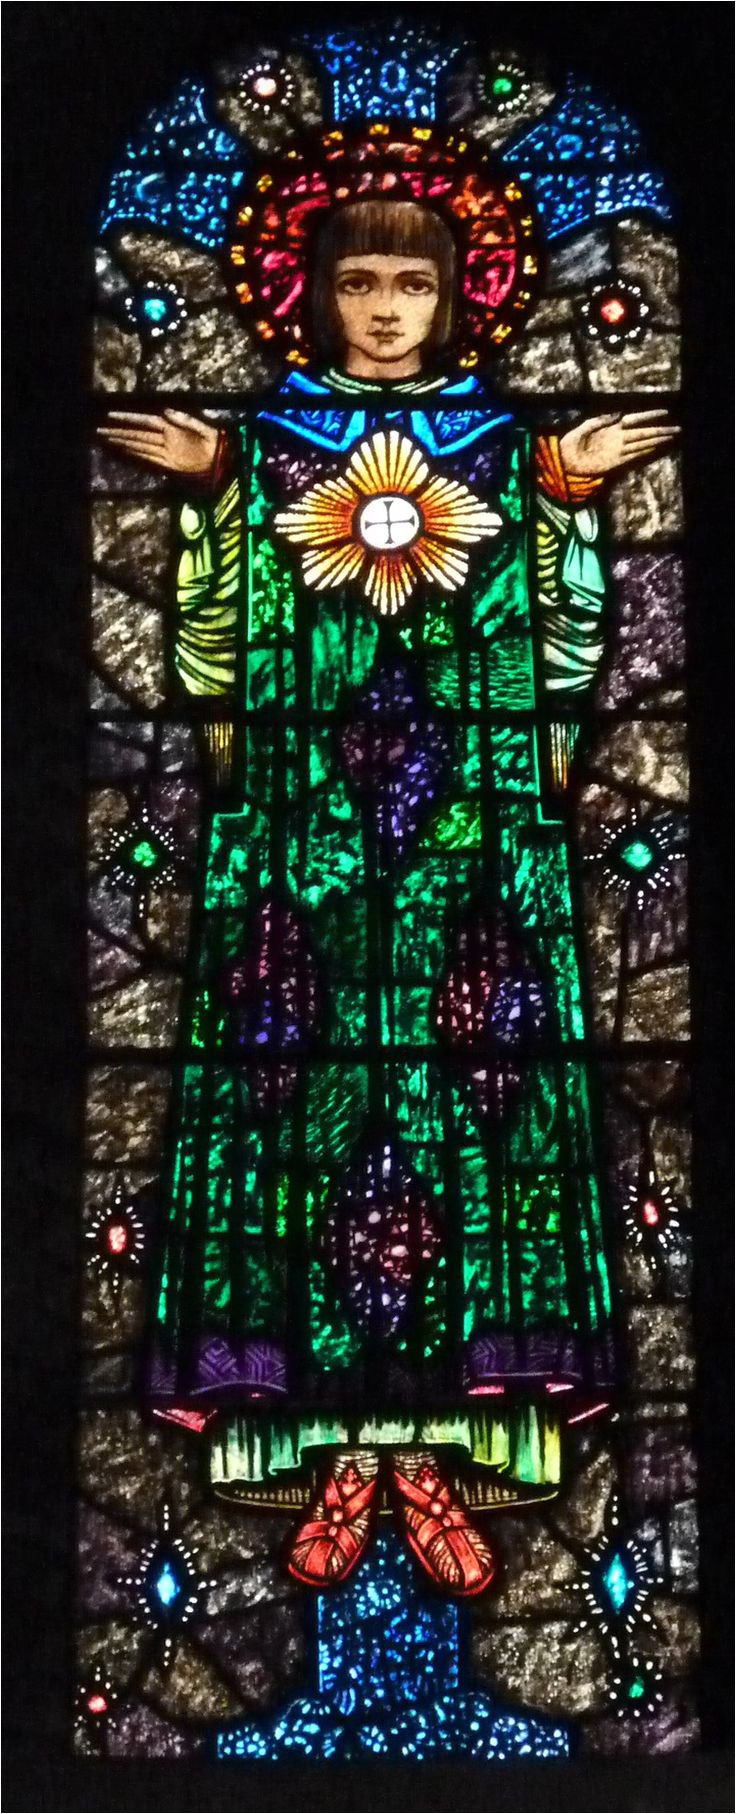 stained glass window by harry clark edmund in ashton in makerfield england photographed by lightworks stained glass